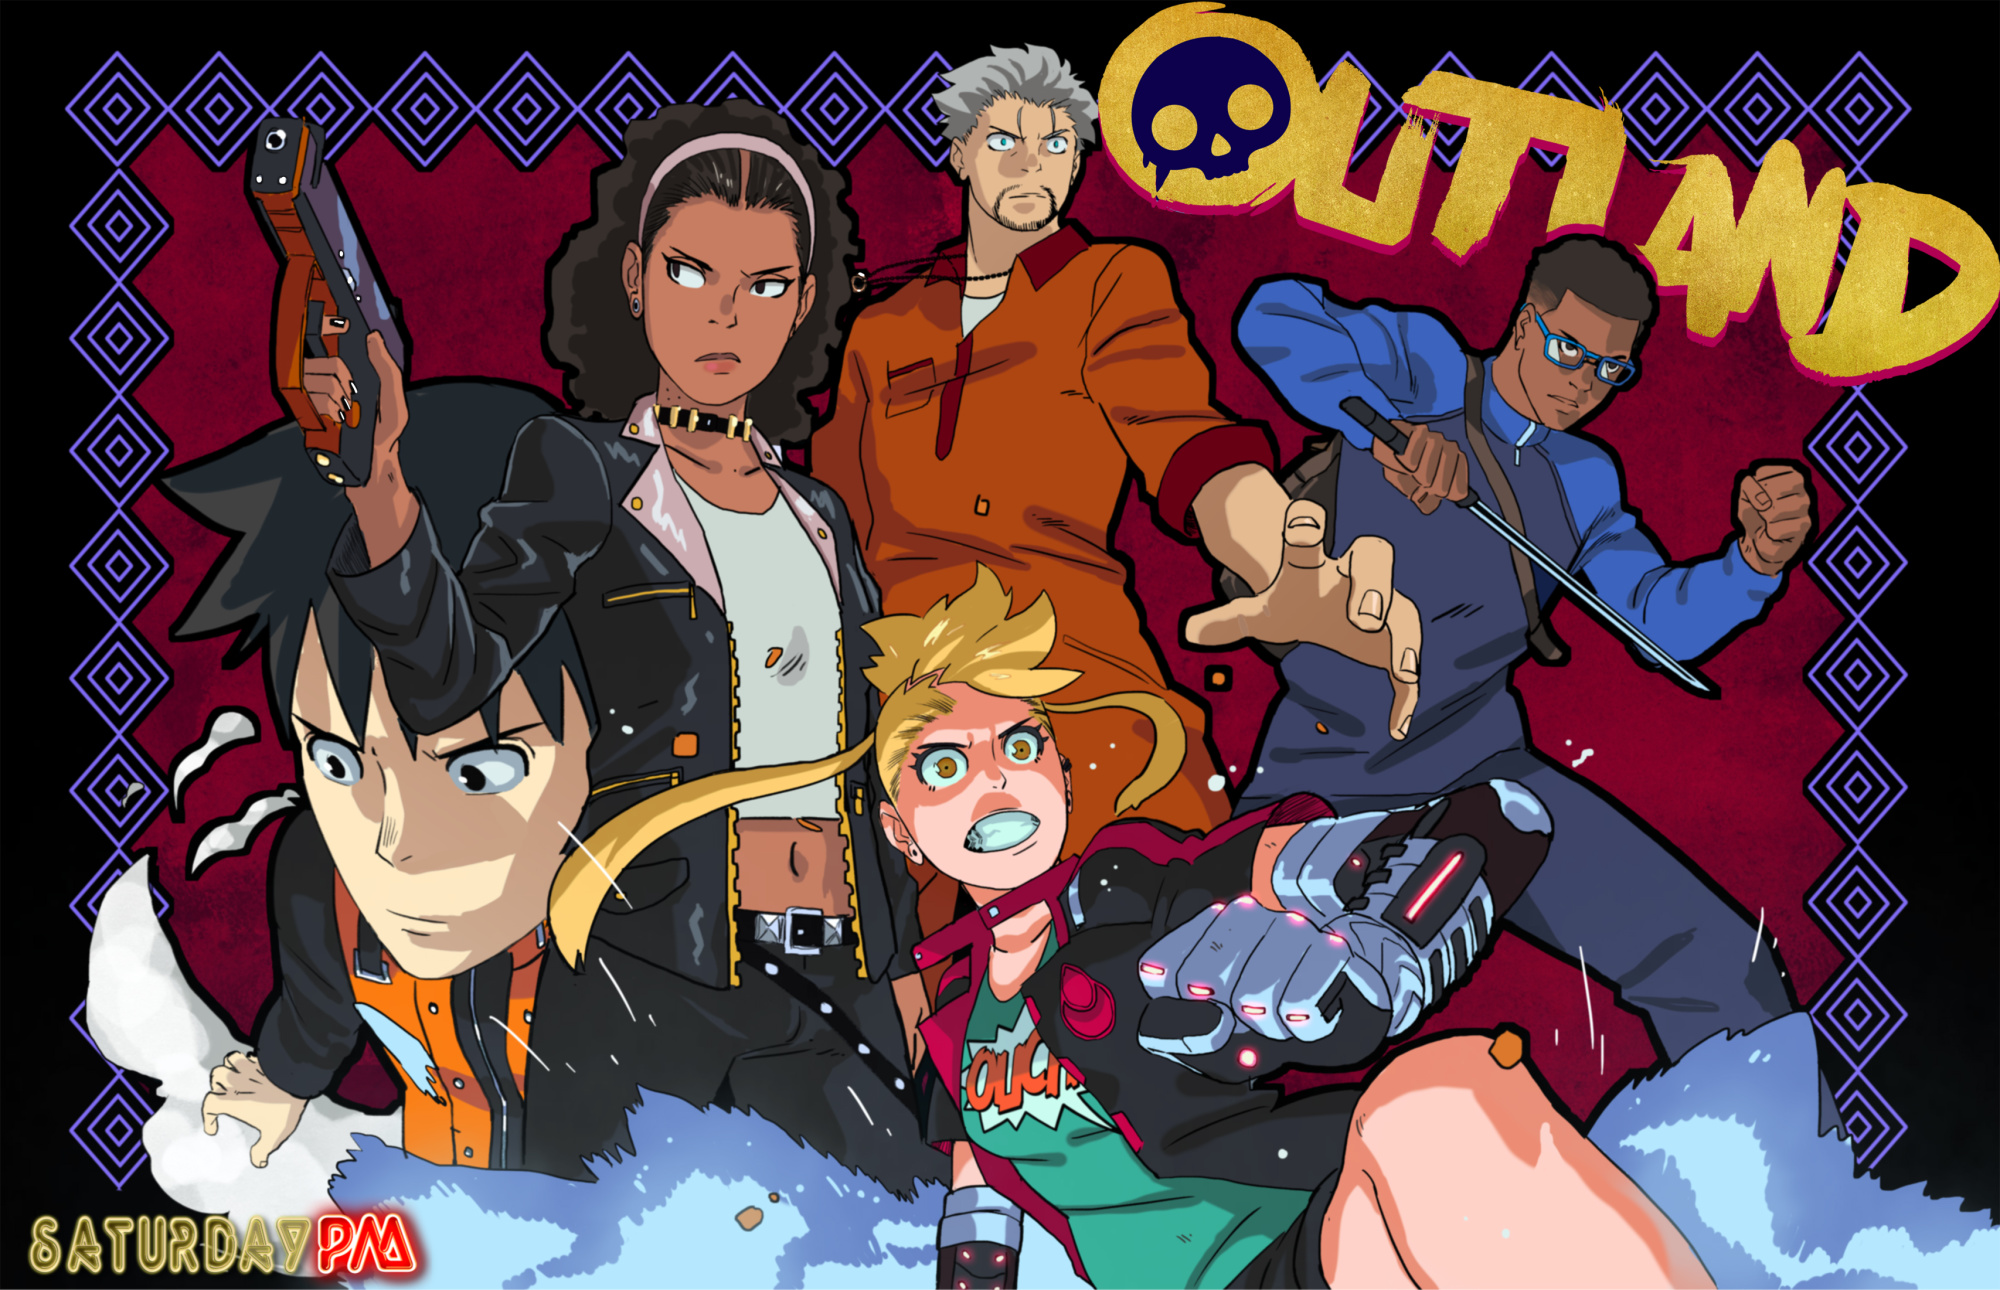 OUTLAND is the 1st series by newcomer, Rashad Milhouse